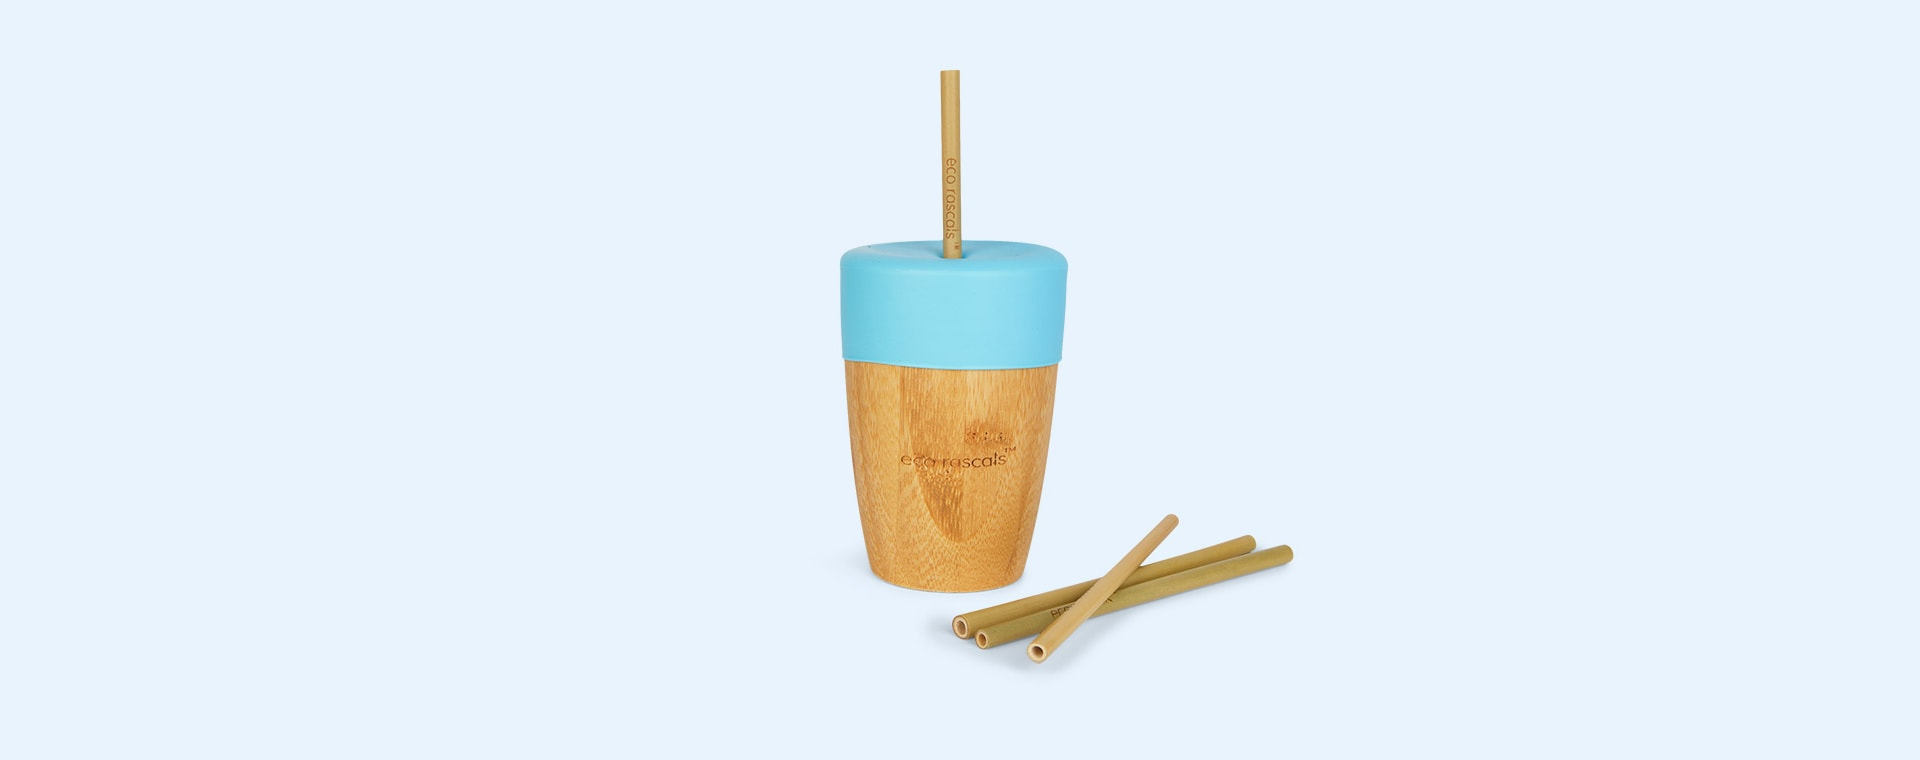 Blue eco rascals Bamboo Suction Car Tableware Set